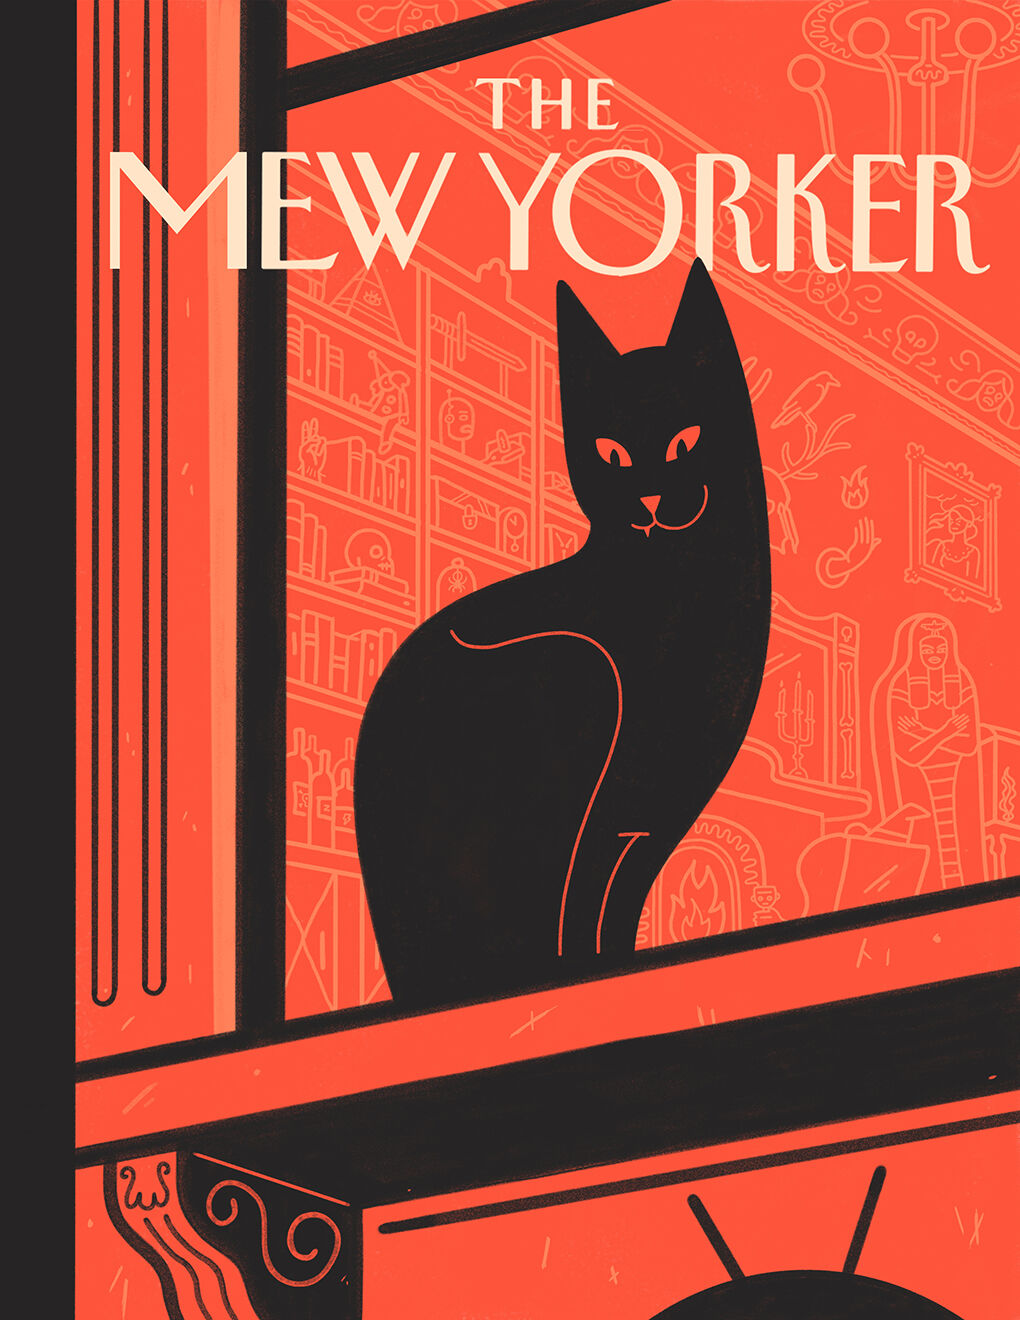 the not yorker is giving rejected new yorker covers a second chance